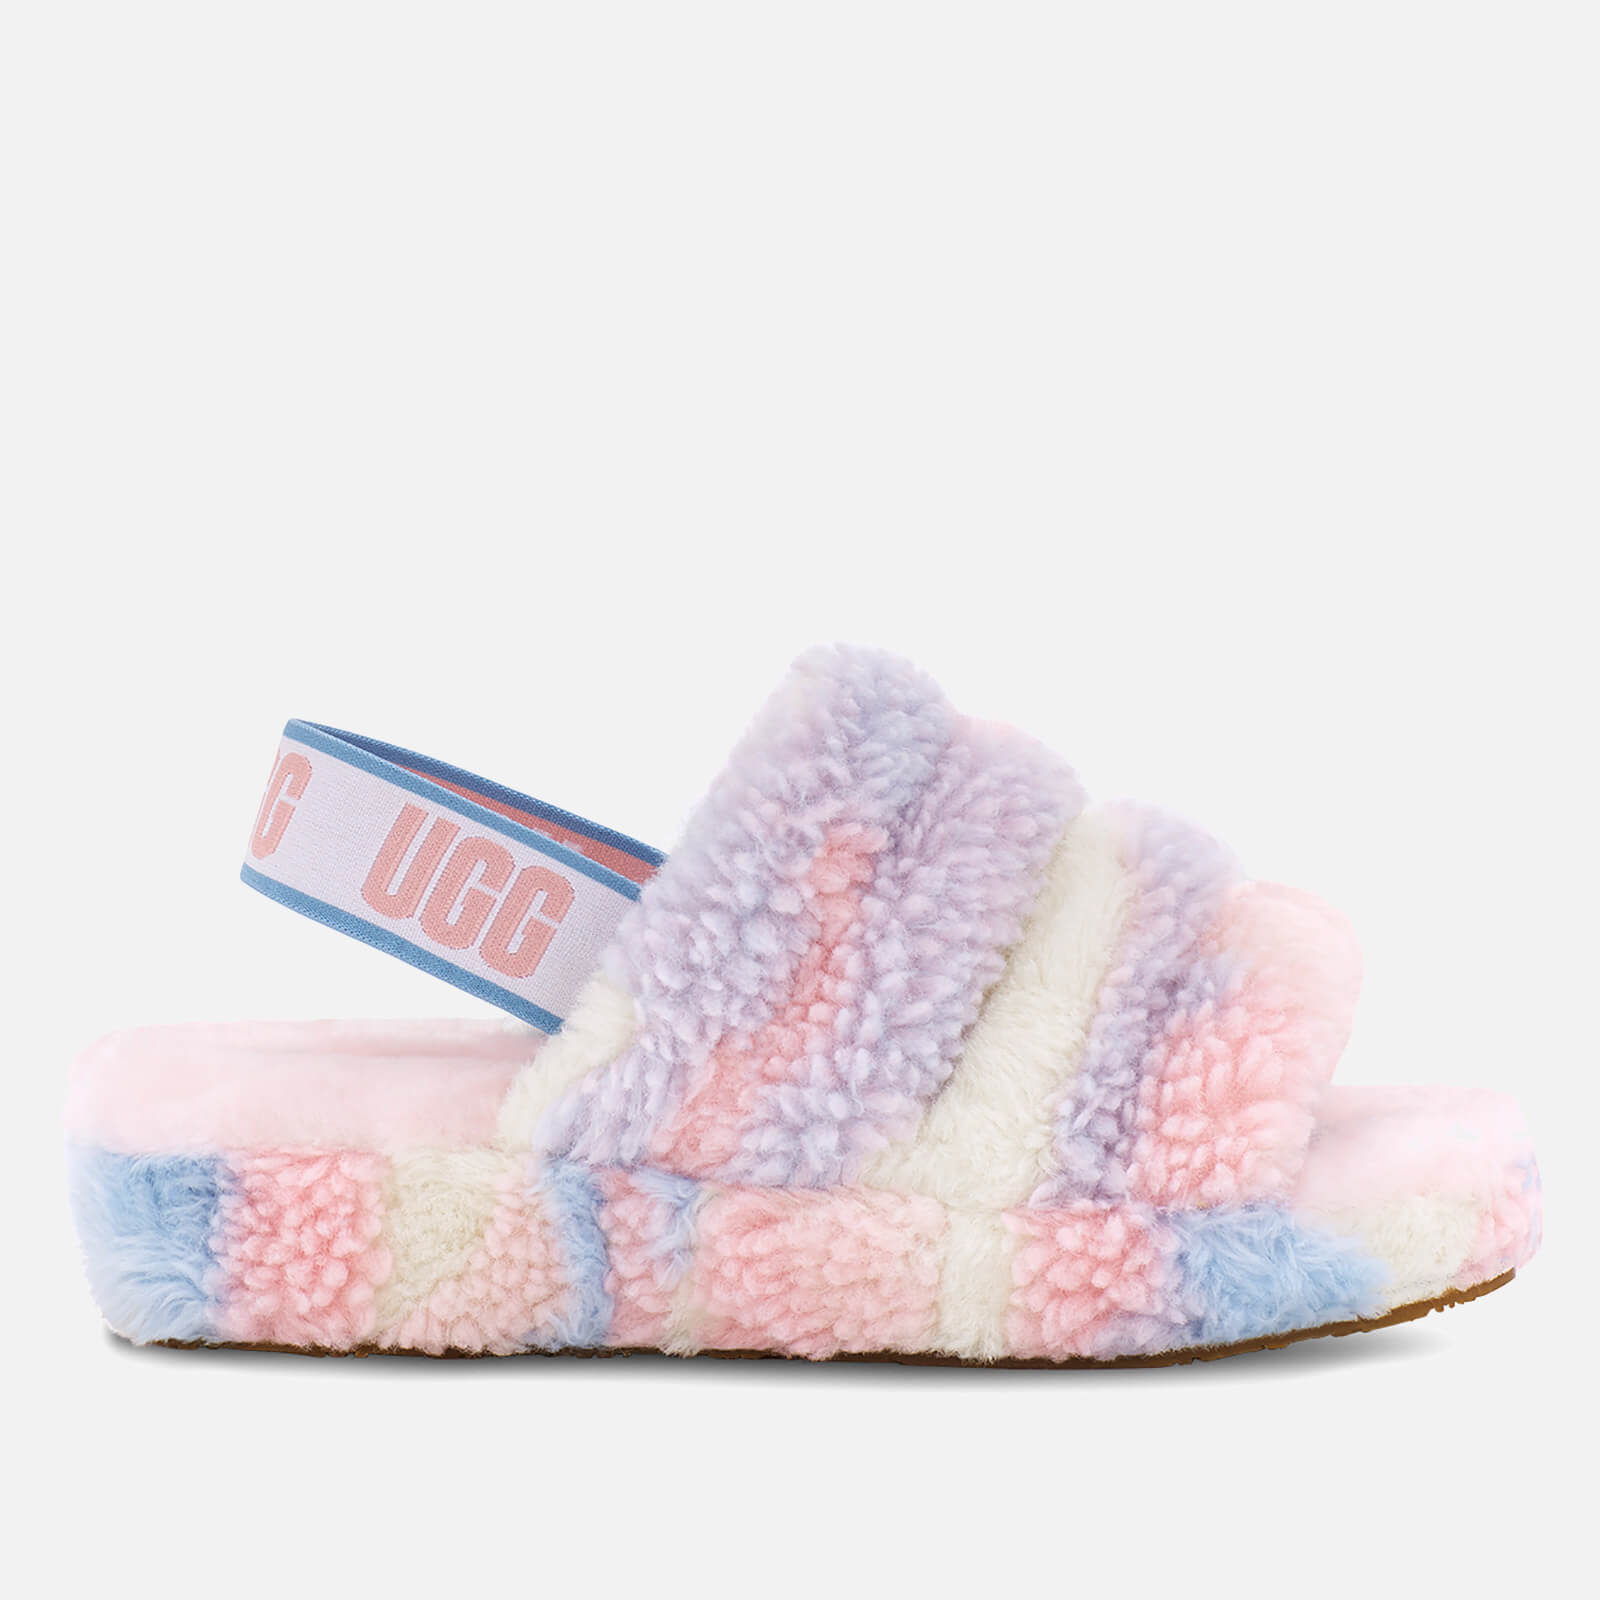 Ugg Women's Fluff Yeah Pride Collection Slippers - Pride Stripes - Uk 3